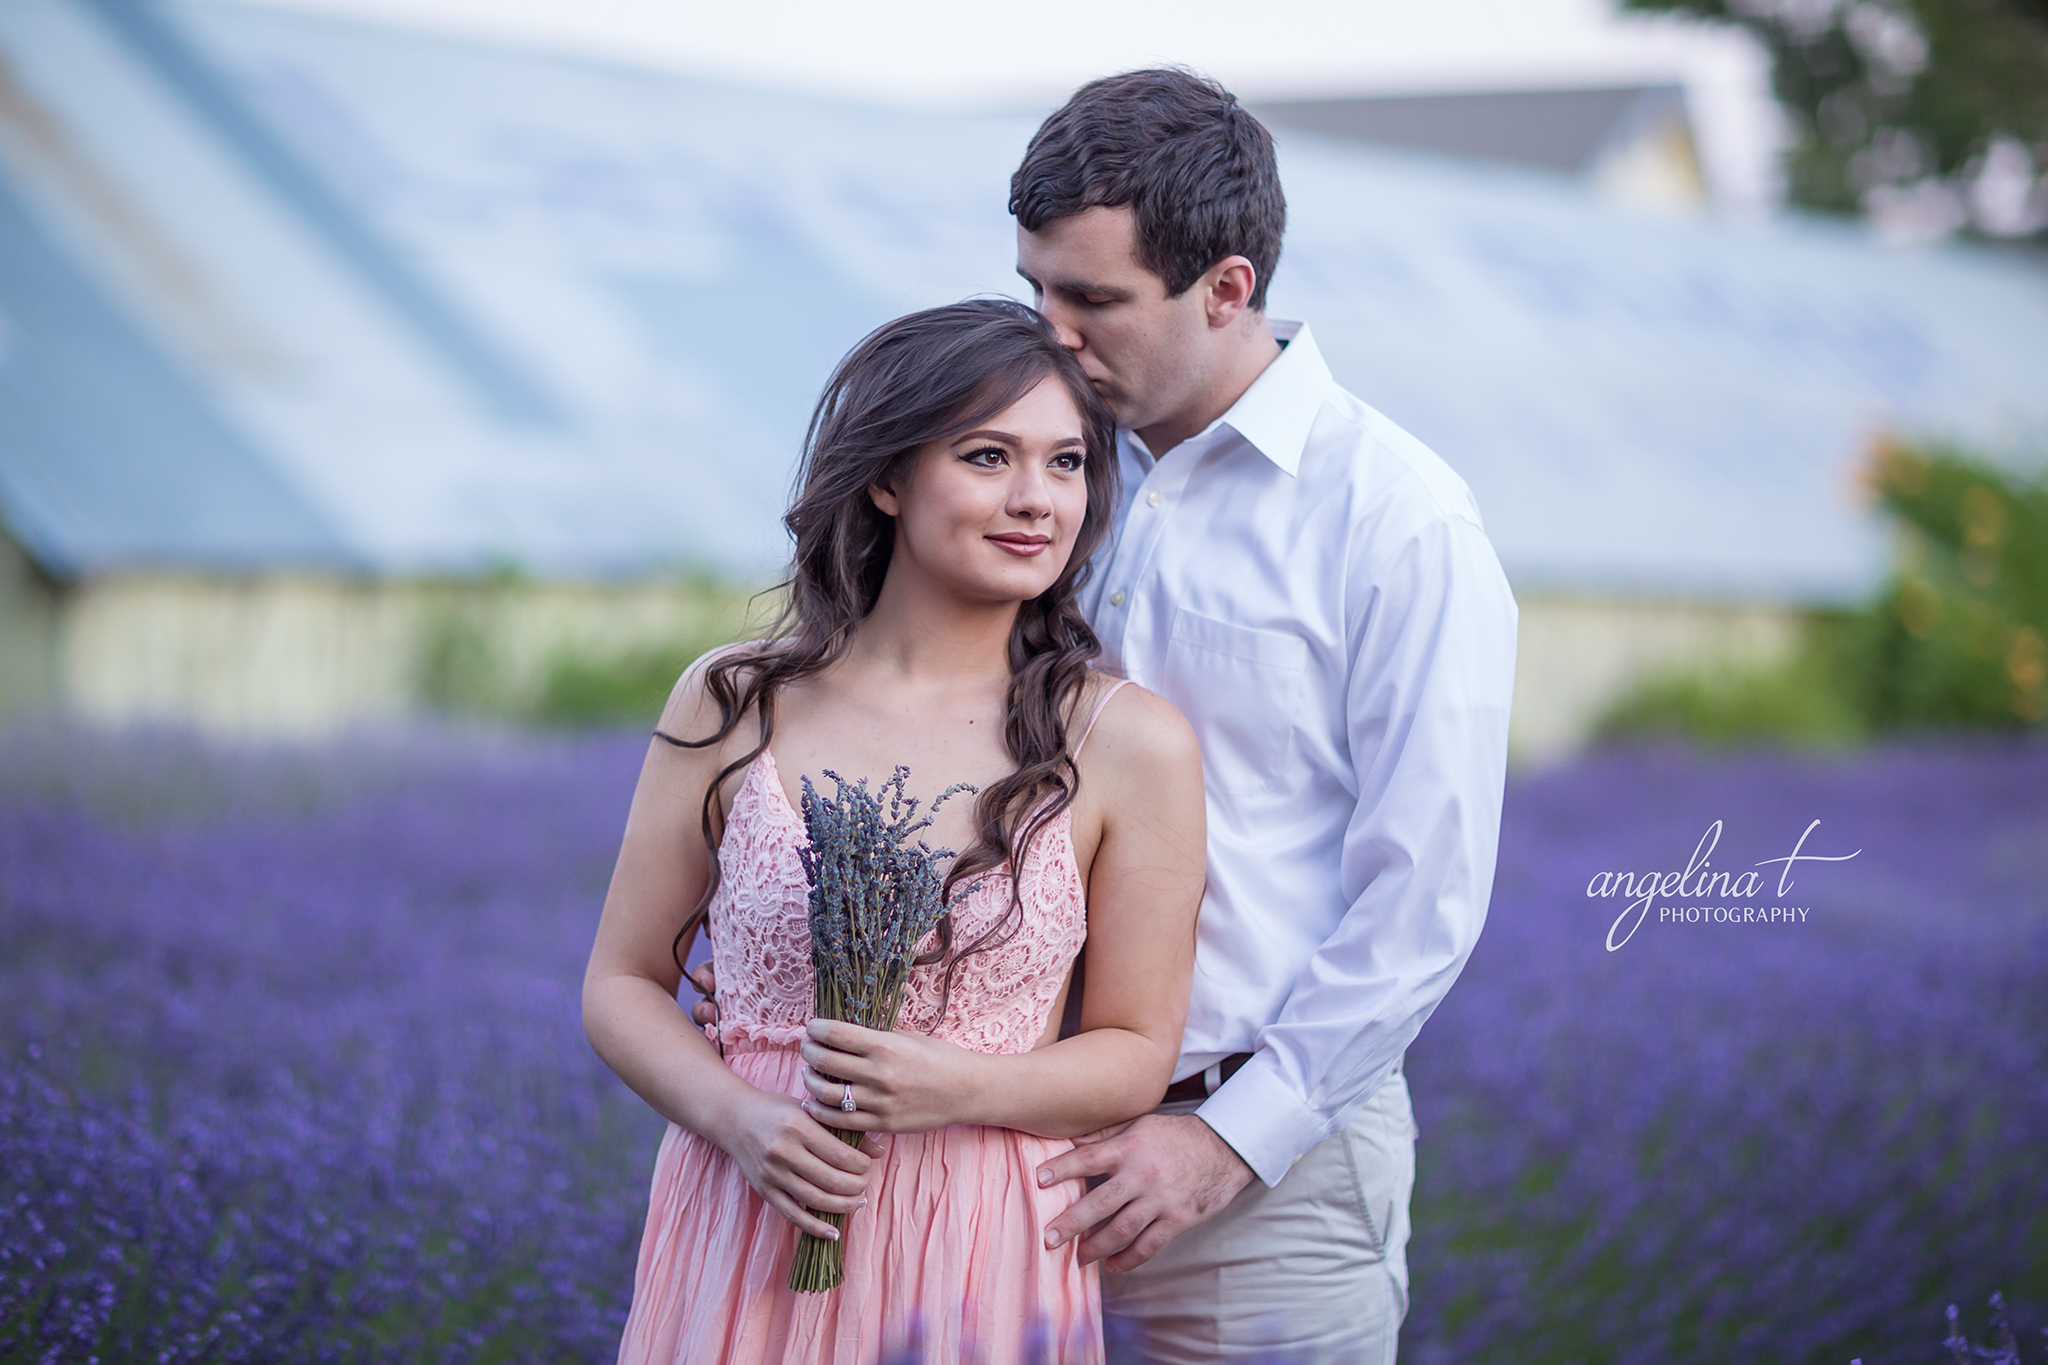 Lavender Field Engagement Photography-16.jpg